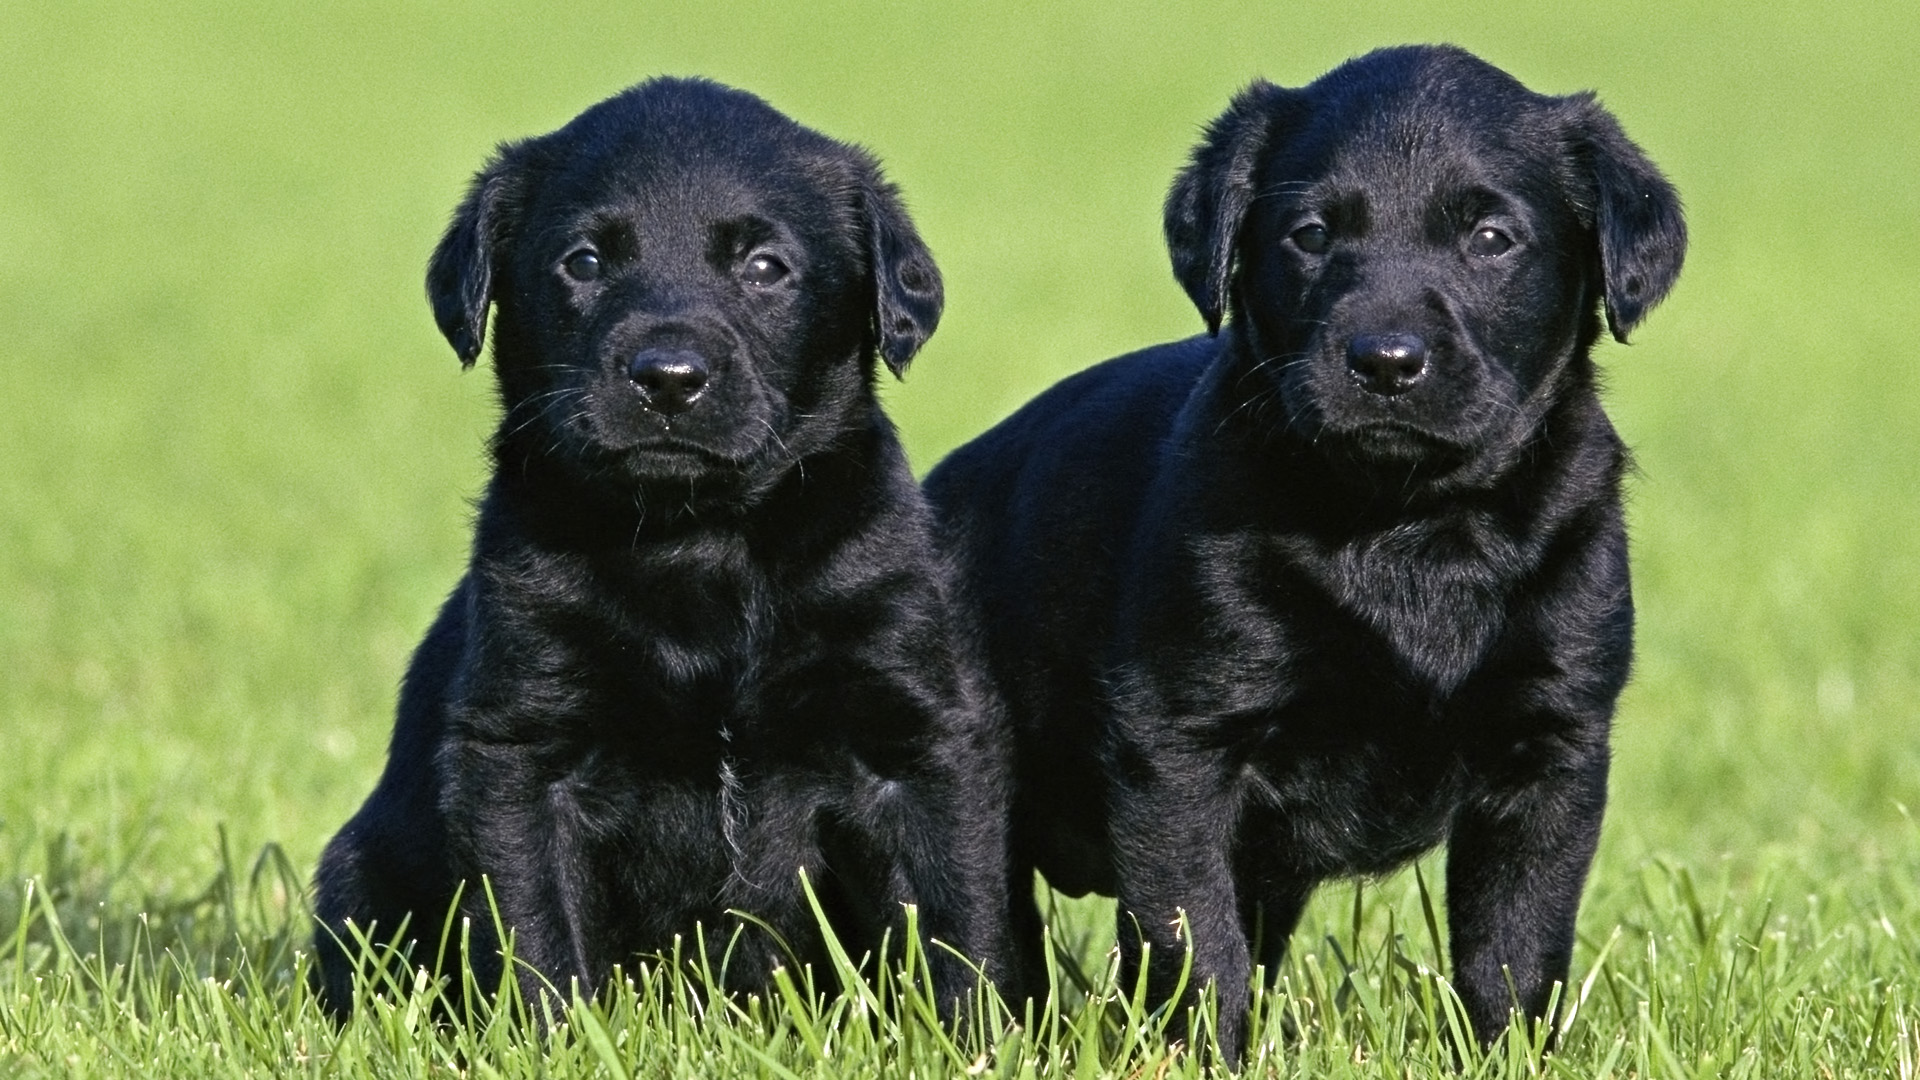 Black Labrador Puppies wallpaper 216440 1920x1080